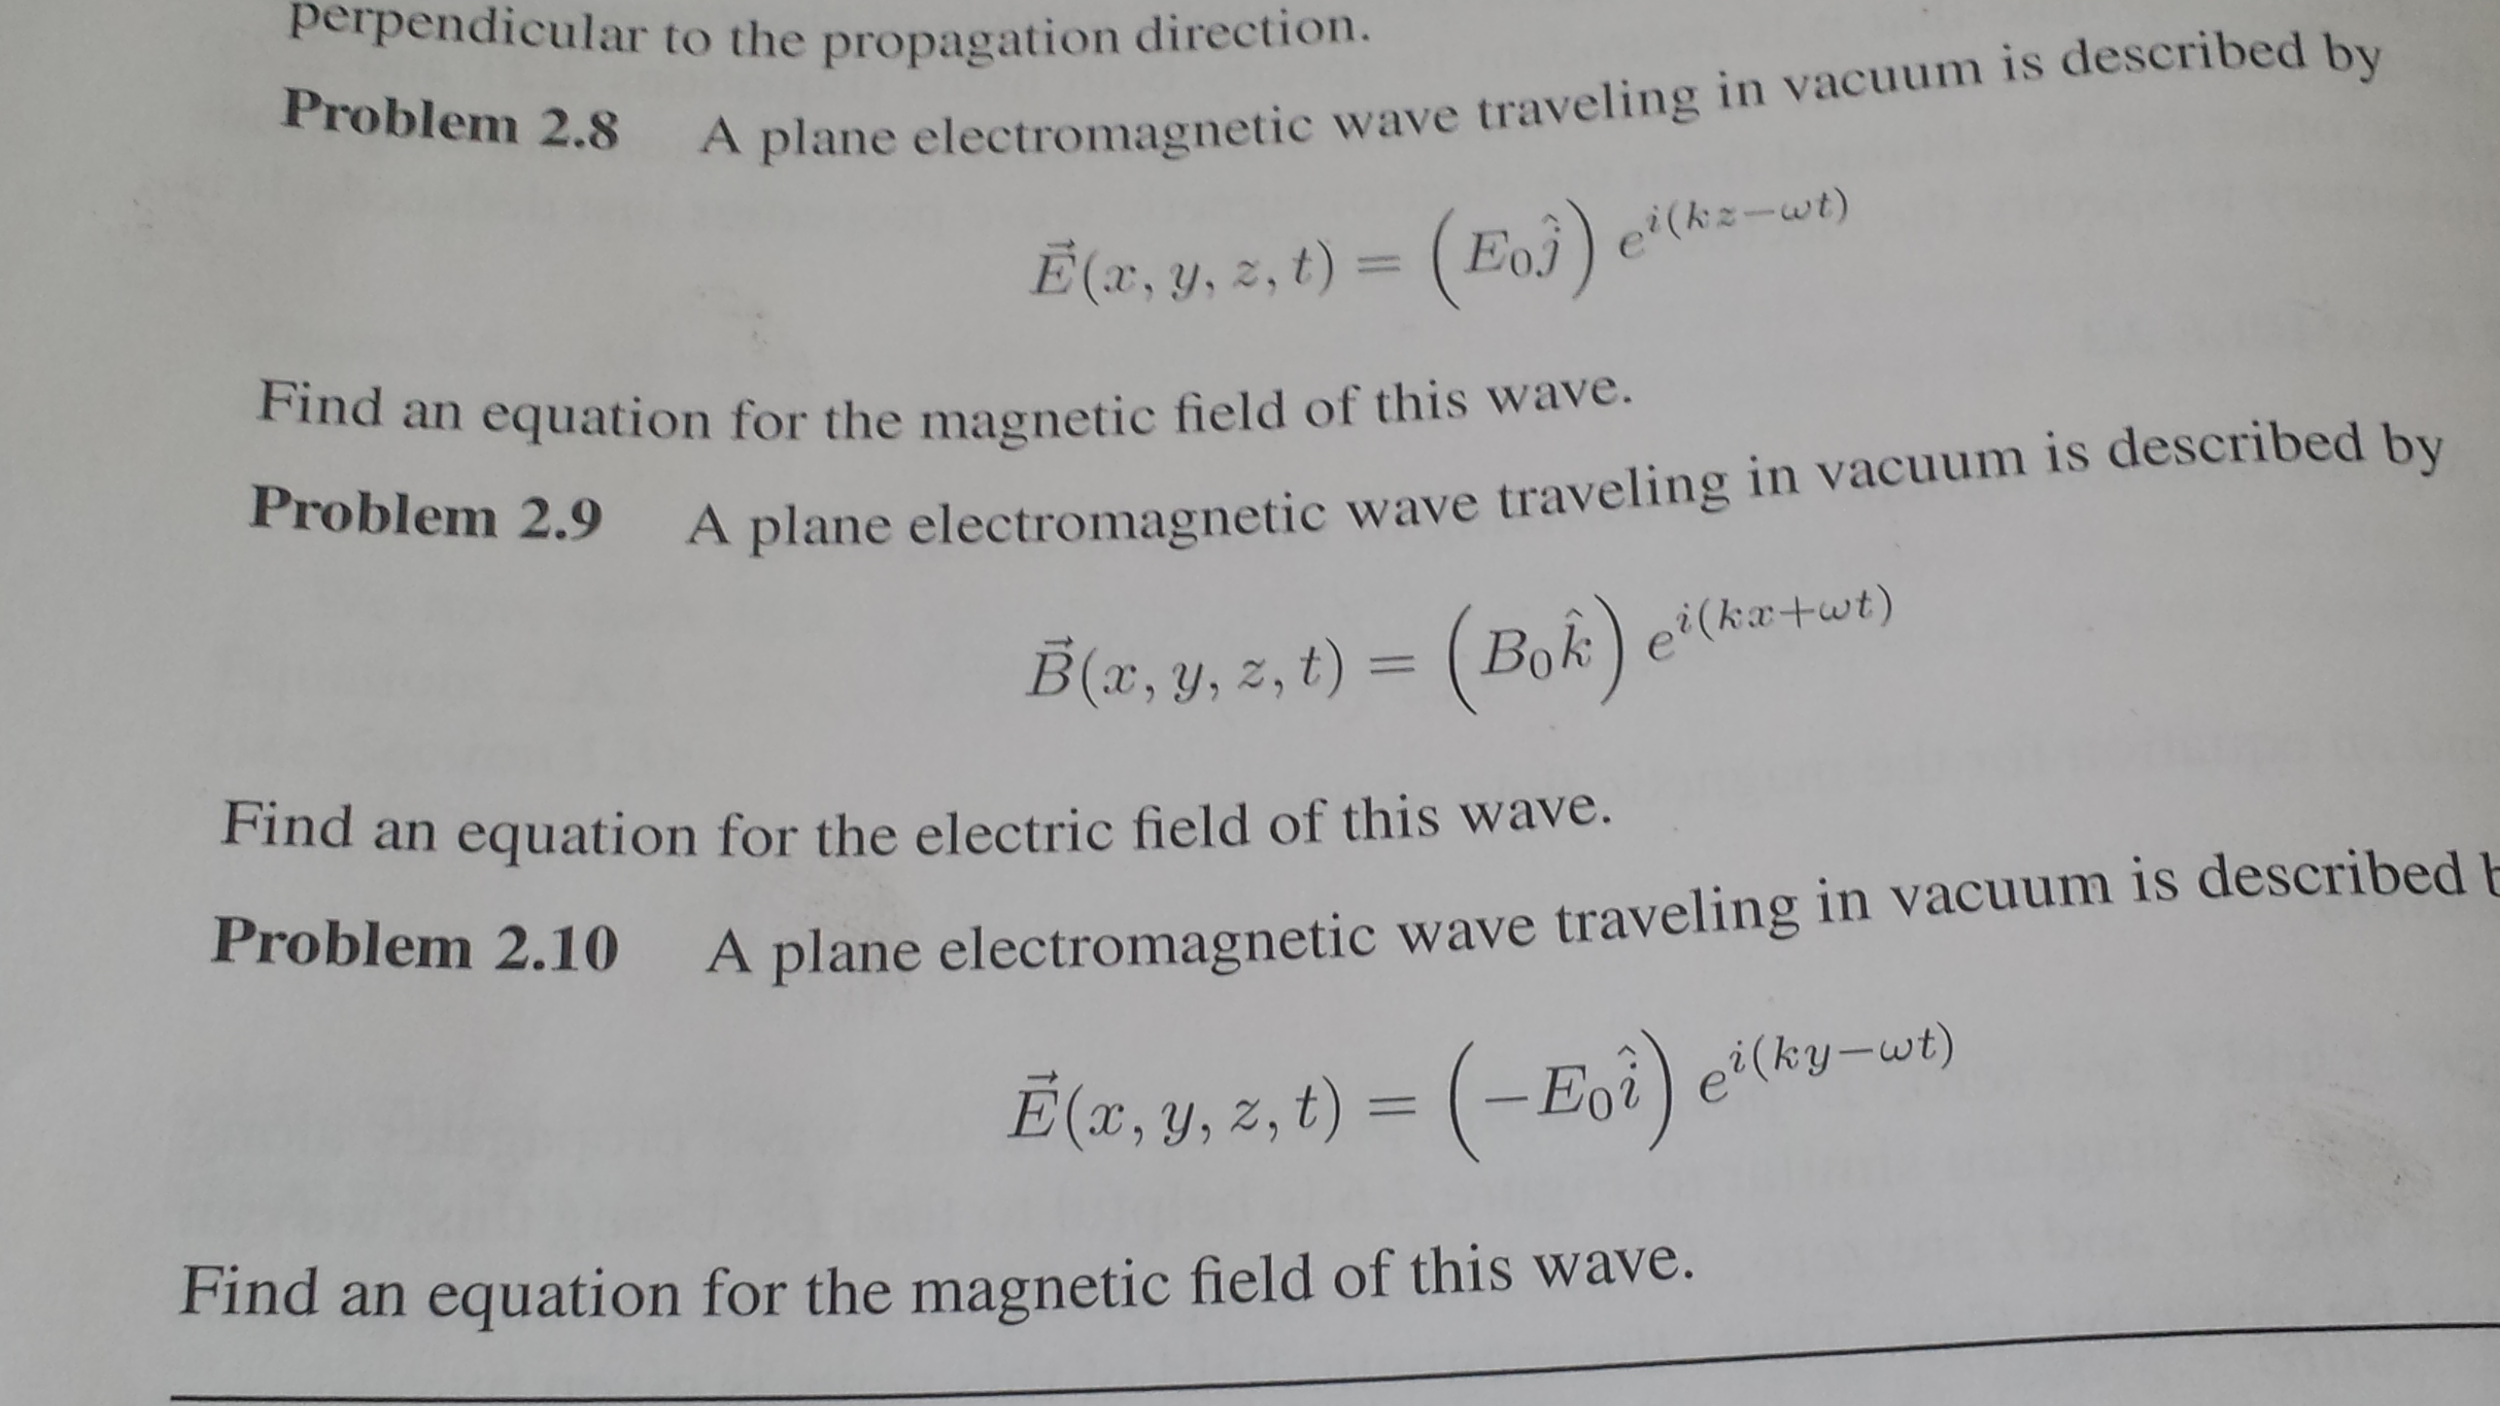 A plane electromaggnetic wave travelling in vacuum